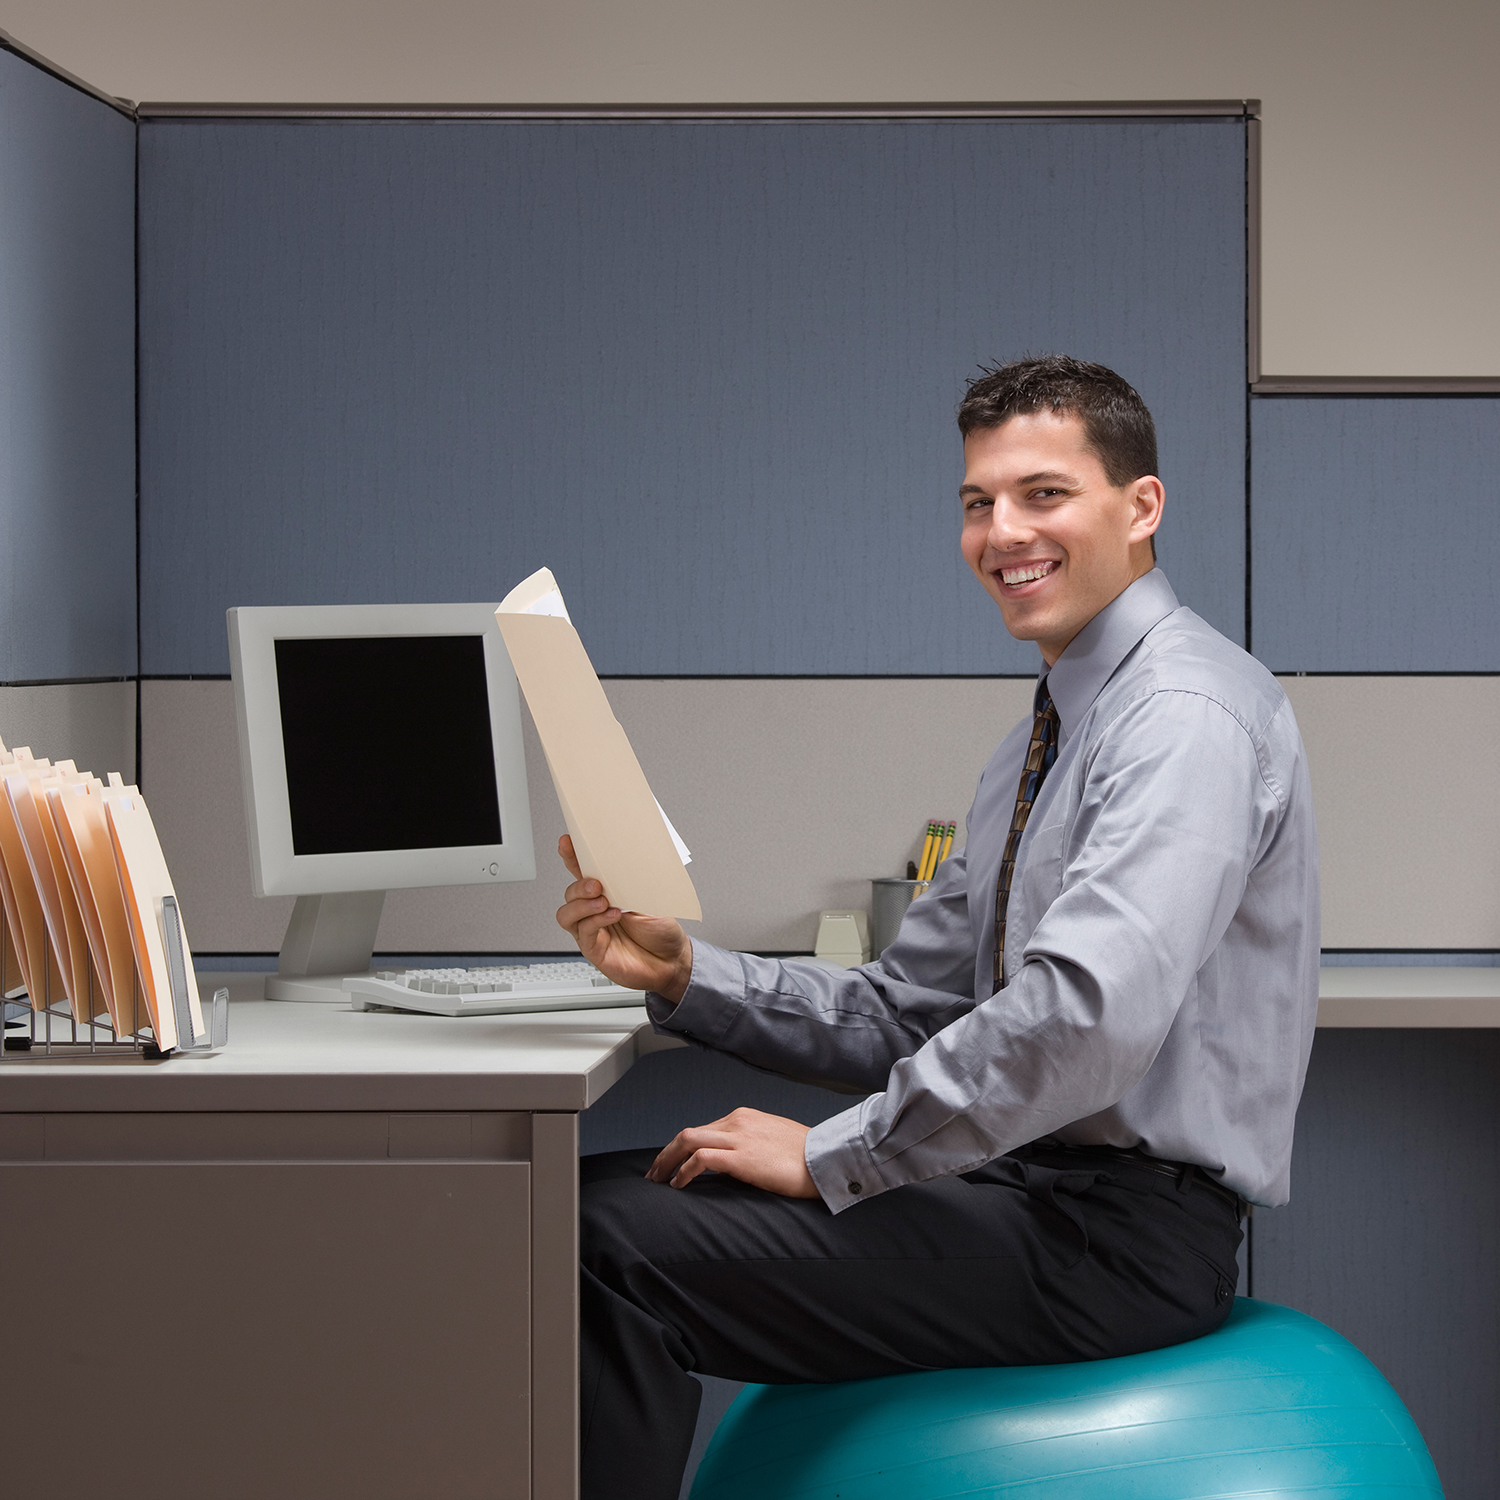 man as desk exercise ball